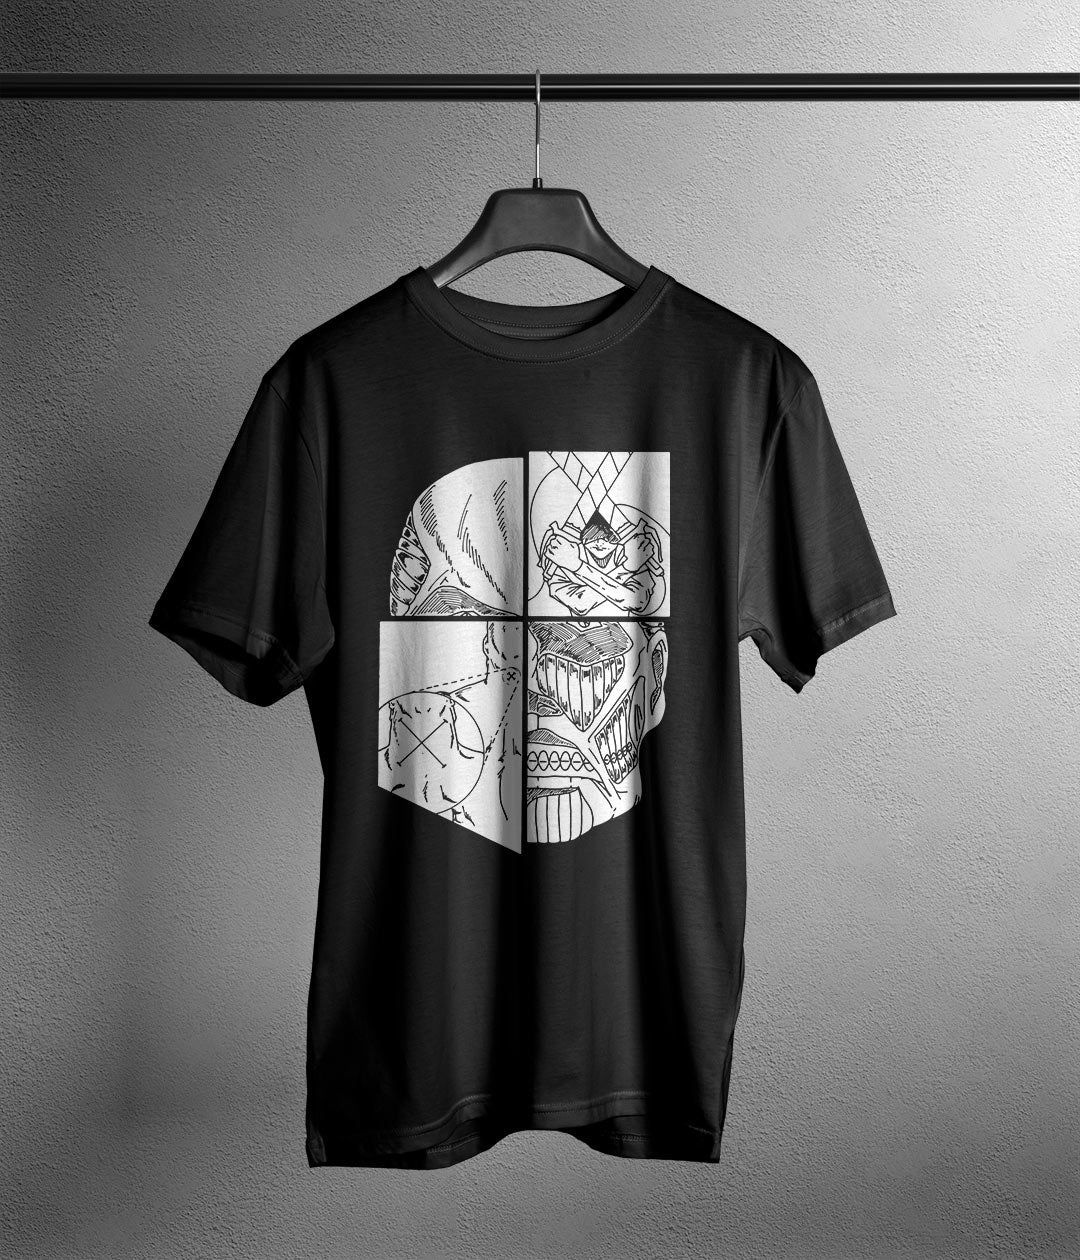 black t shirt with attack on titan anime shield printed in white